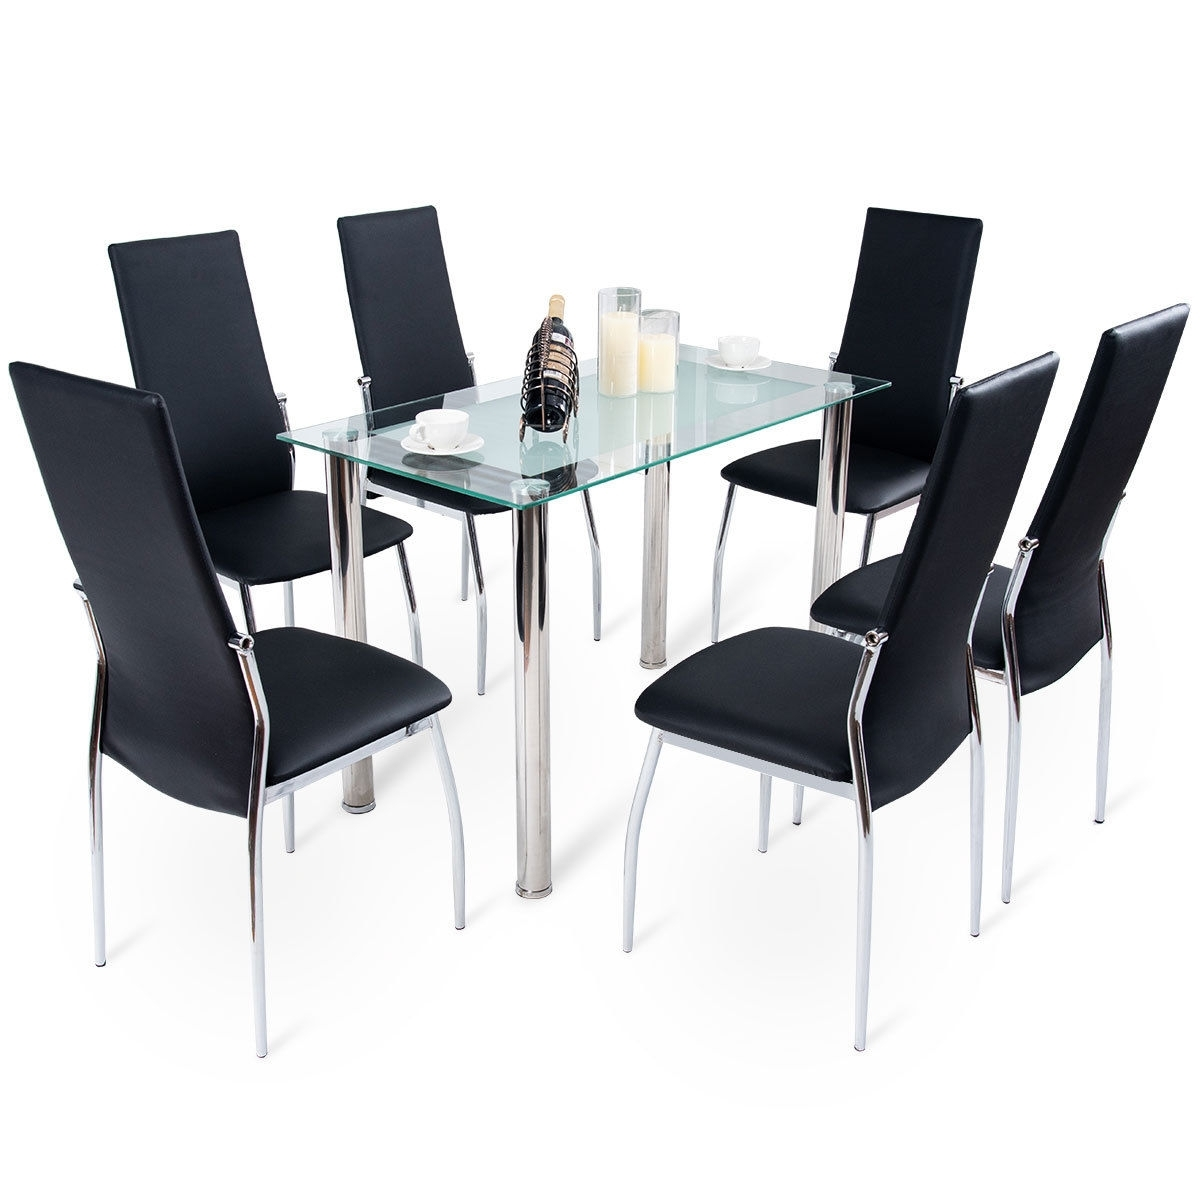 Black Glass Dining Tables With 6 Chairs Regarding Well Liked Costway: Costway Modern Glass Dining Table Set Tempered Glass Top (View 8 of 25)